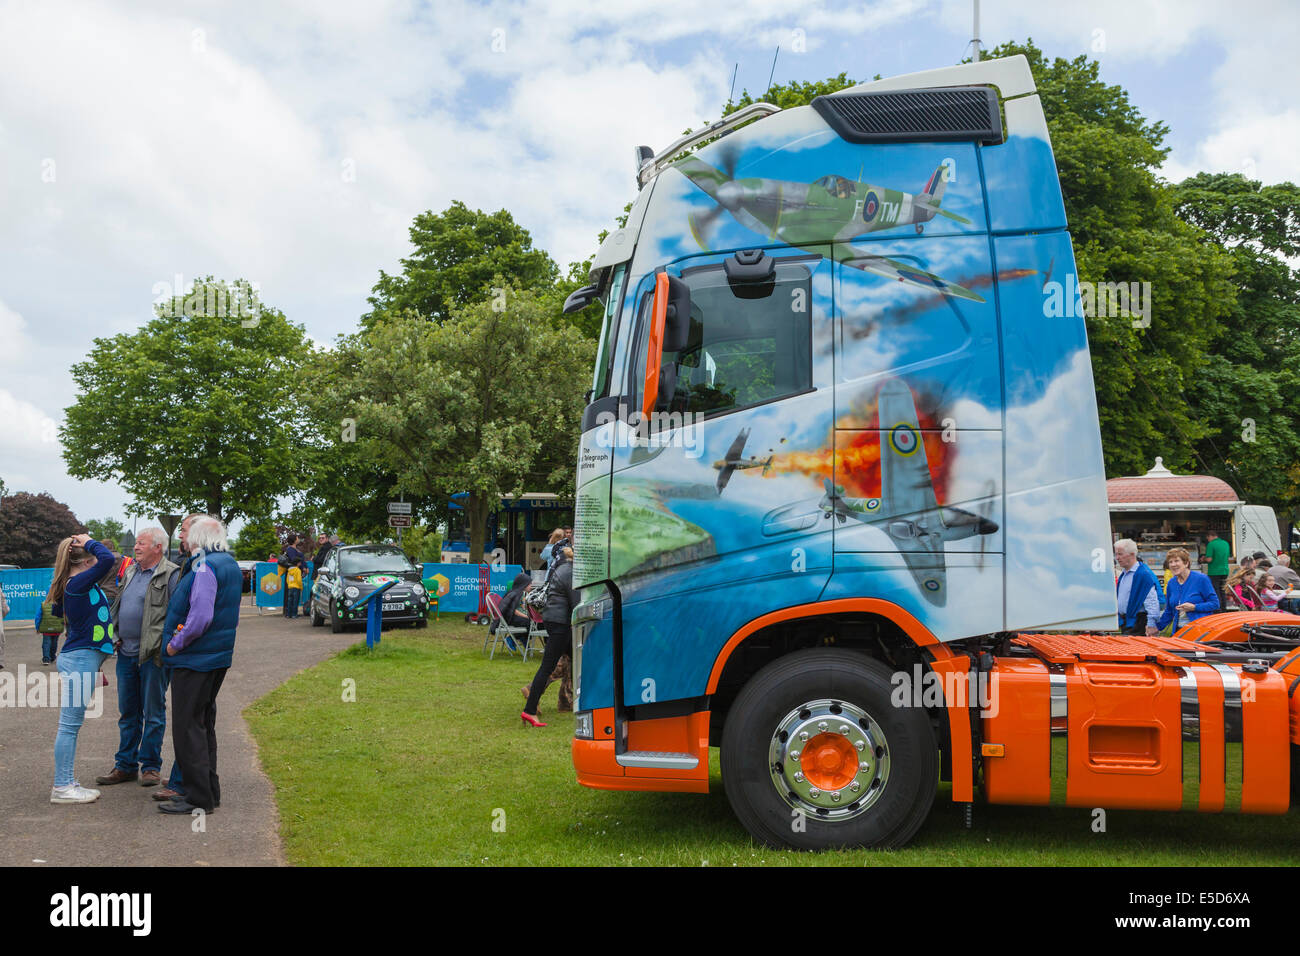 Artwork on cab of articulated lorry showing WW2 fighter planes - Stock Image